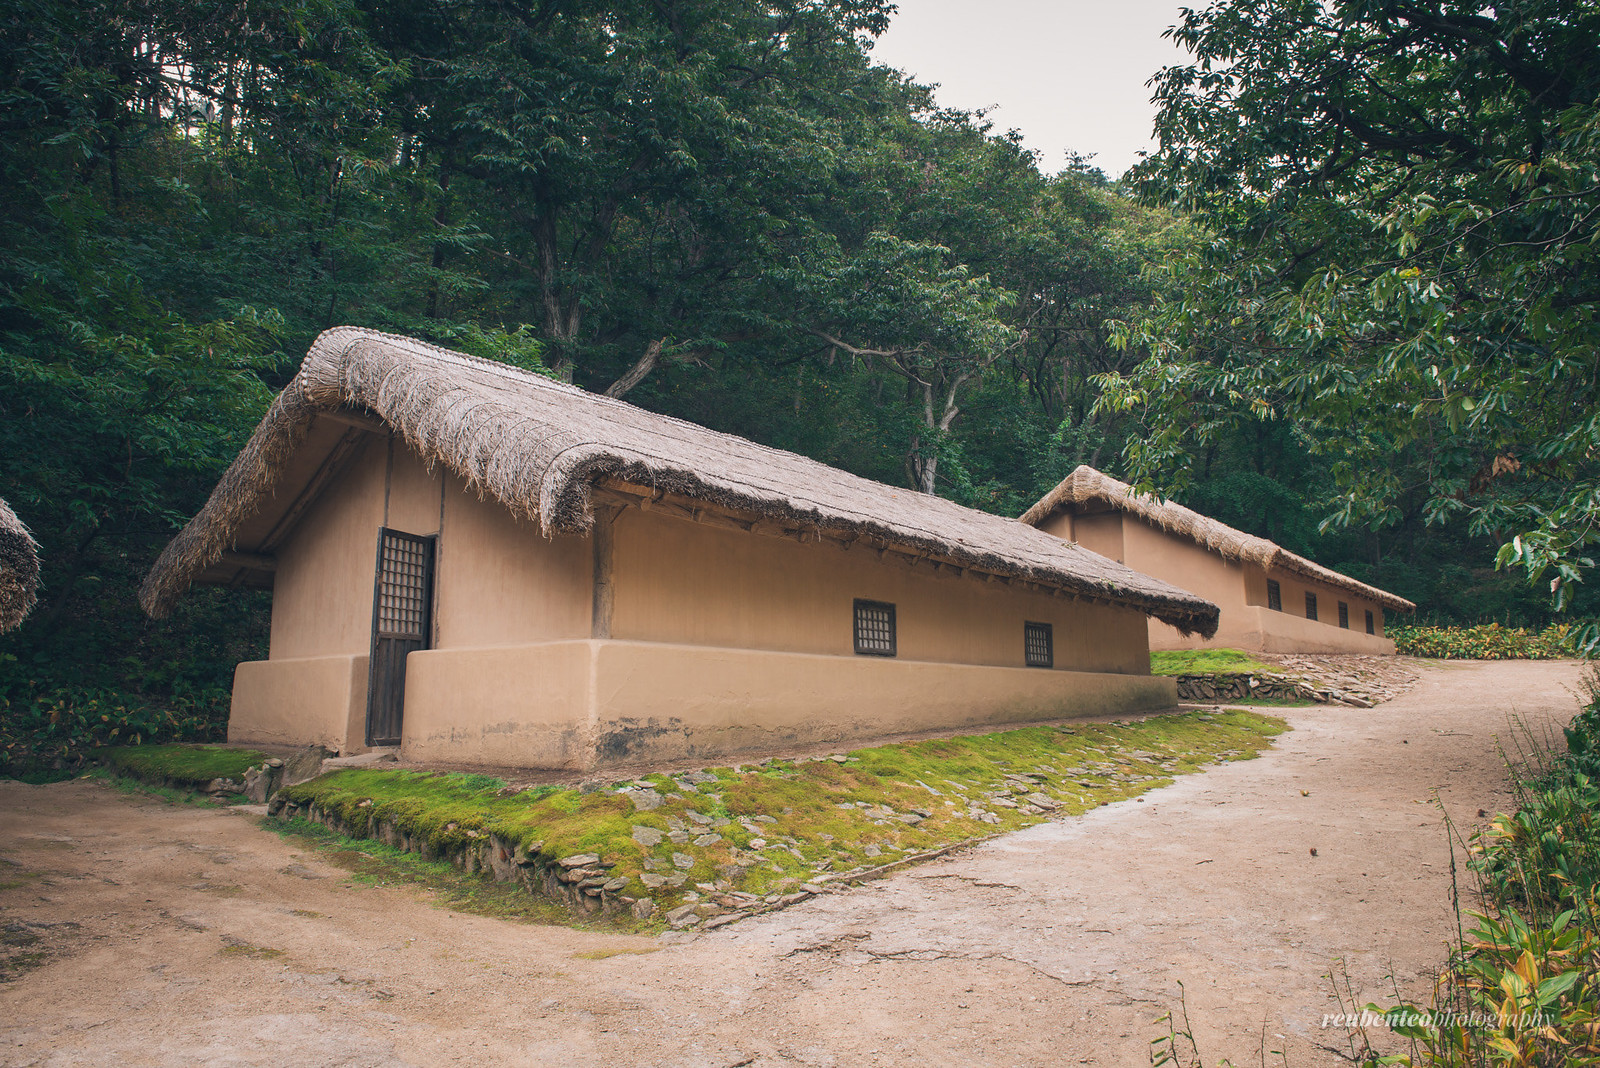 Paeksong-ri Revolutionary site